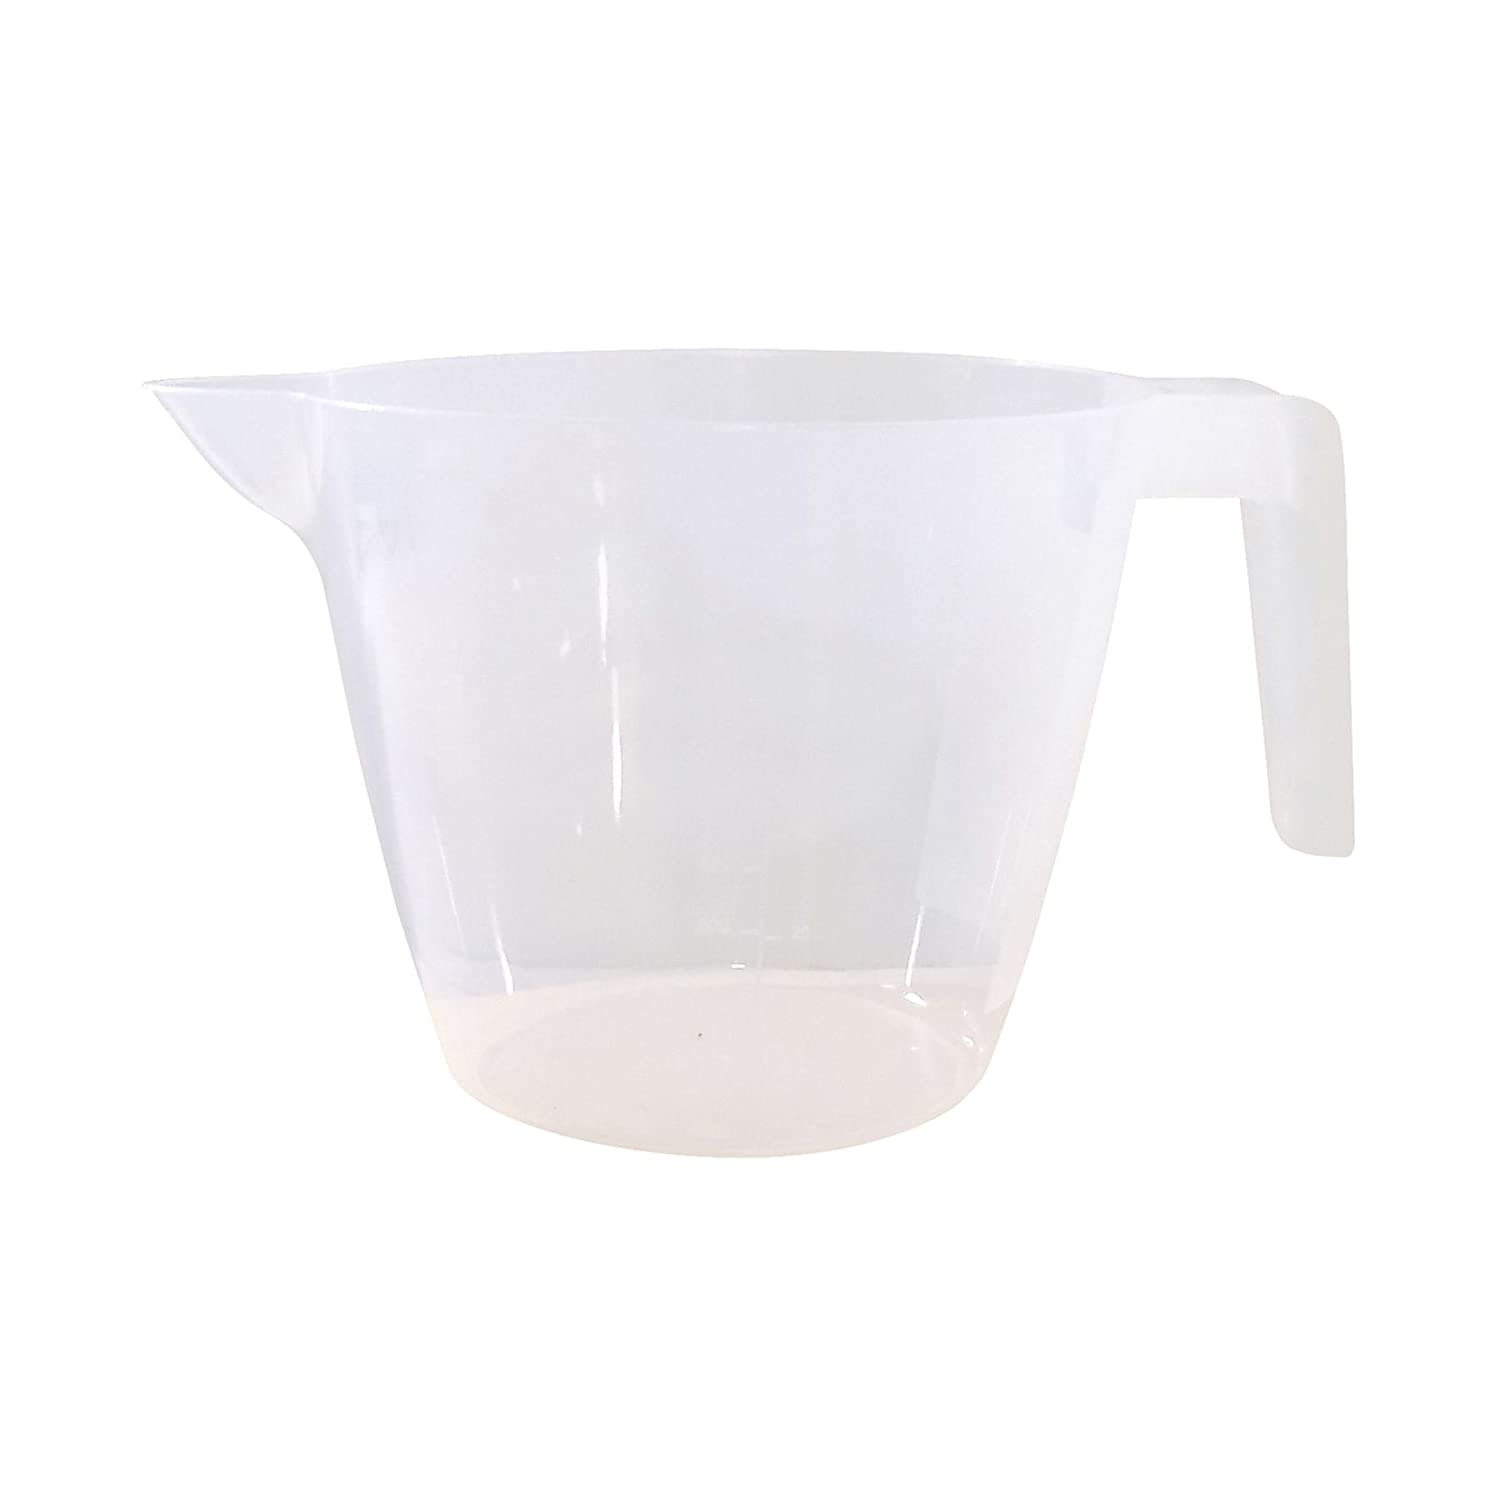 LARGE 2L METRIC AND IMPERIAL MEASURING JUG WITH EASY POUR SPOUT 25 X 12 X 15CM STORAGE UNIQUE